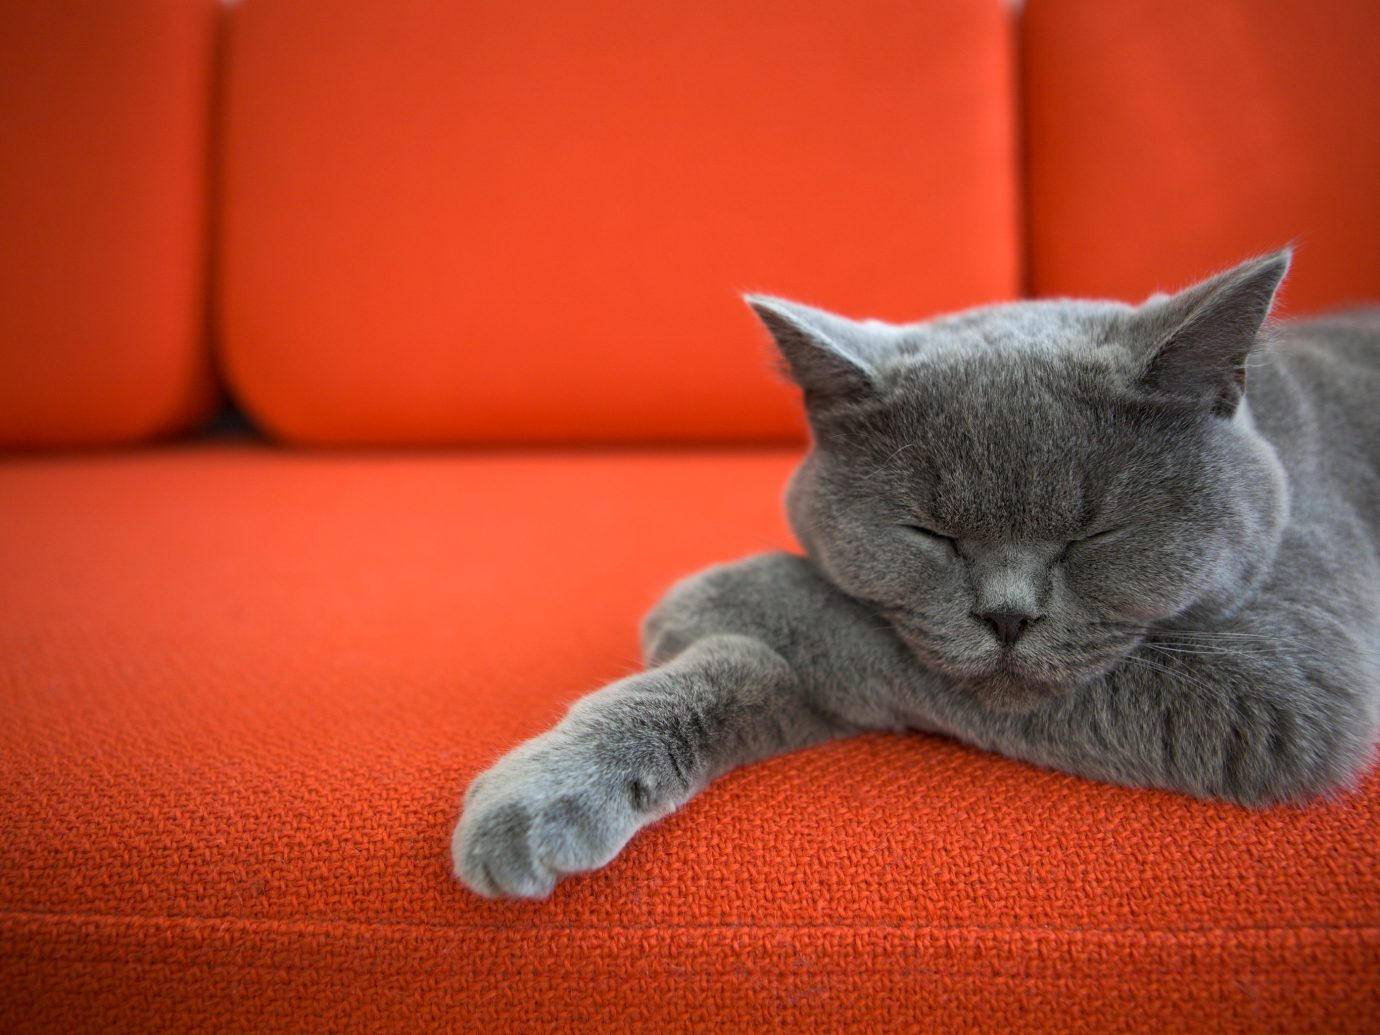 Hotels cat sofa indoor sitting grey gray mammal vertebrate whiskers british shorthair orange cat like mammal small to medium sized cats red chartreux laying kitten domestic short haired cat russian blue seat domestic cat